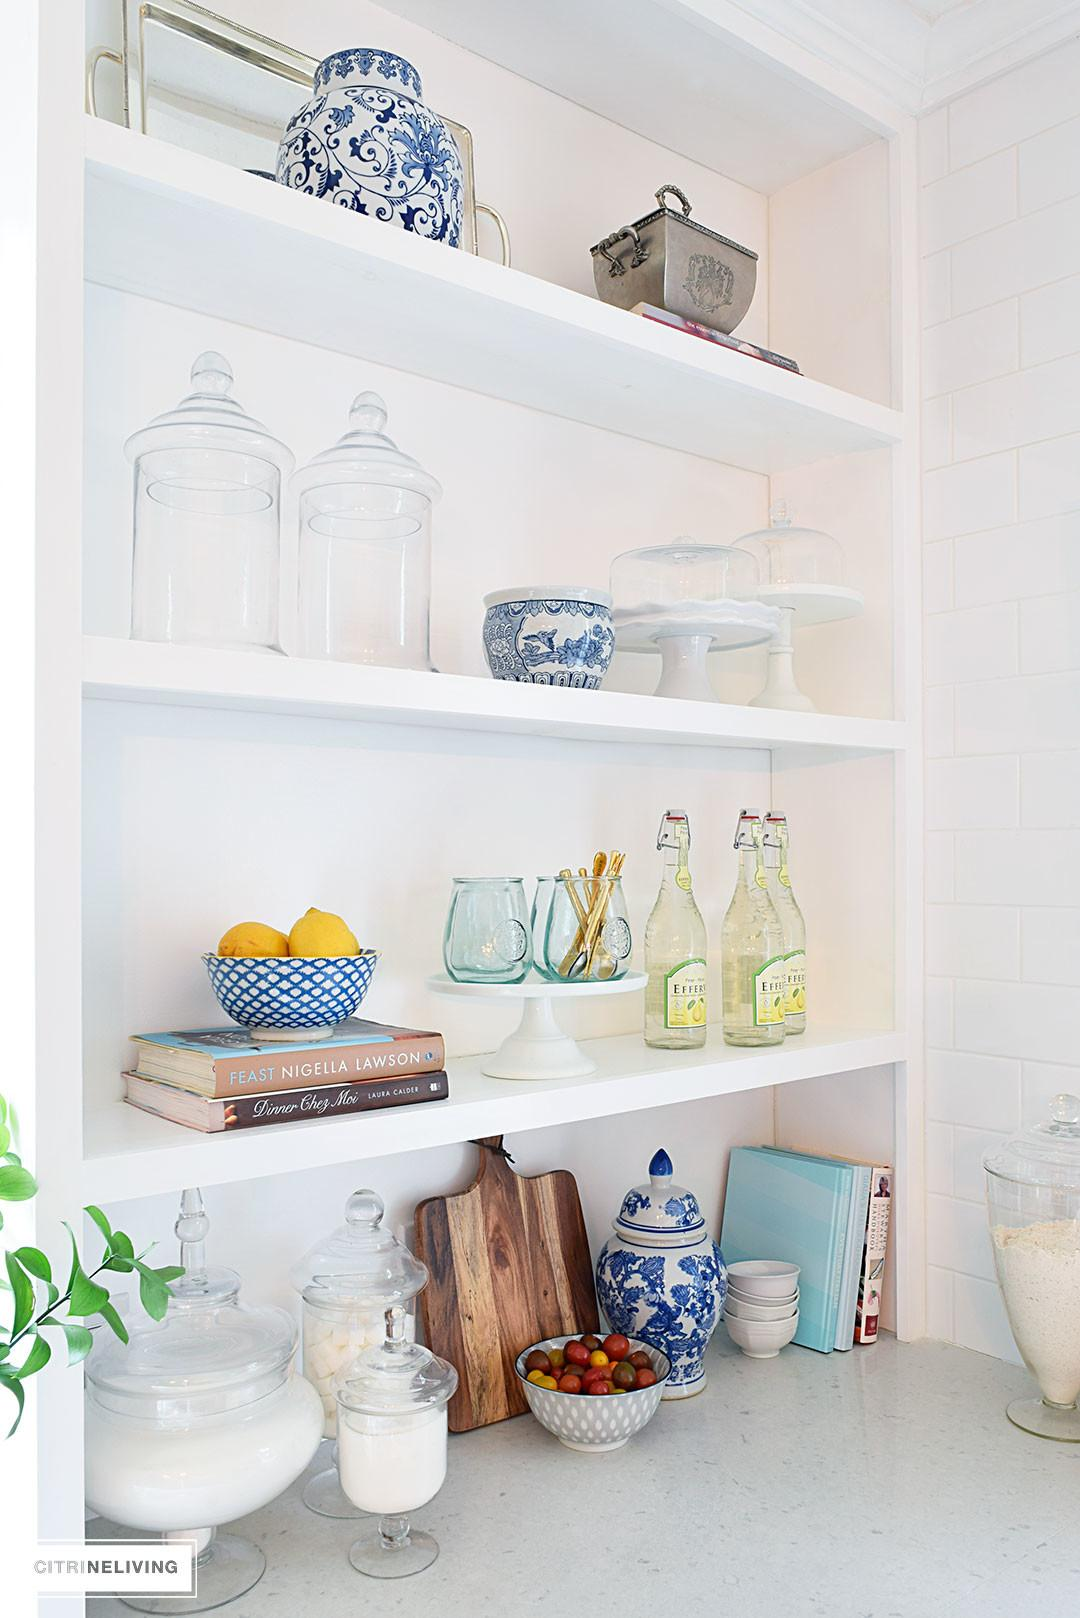 Style Open Kitchen Shelves Citrineliving